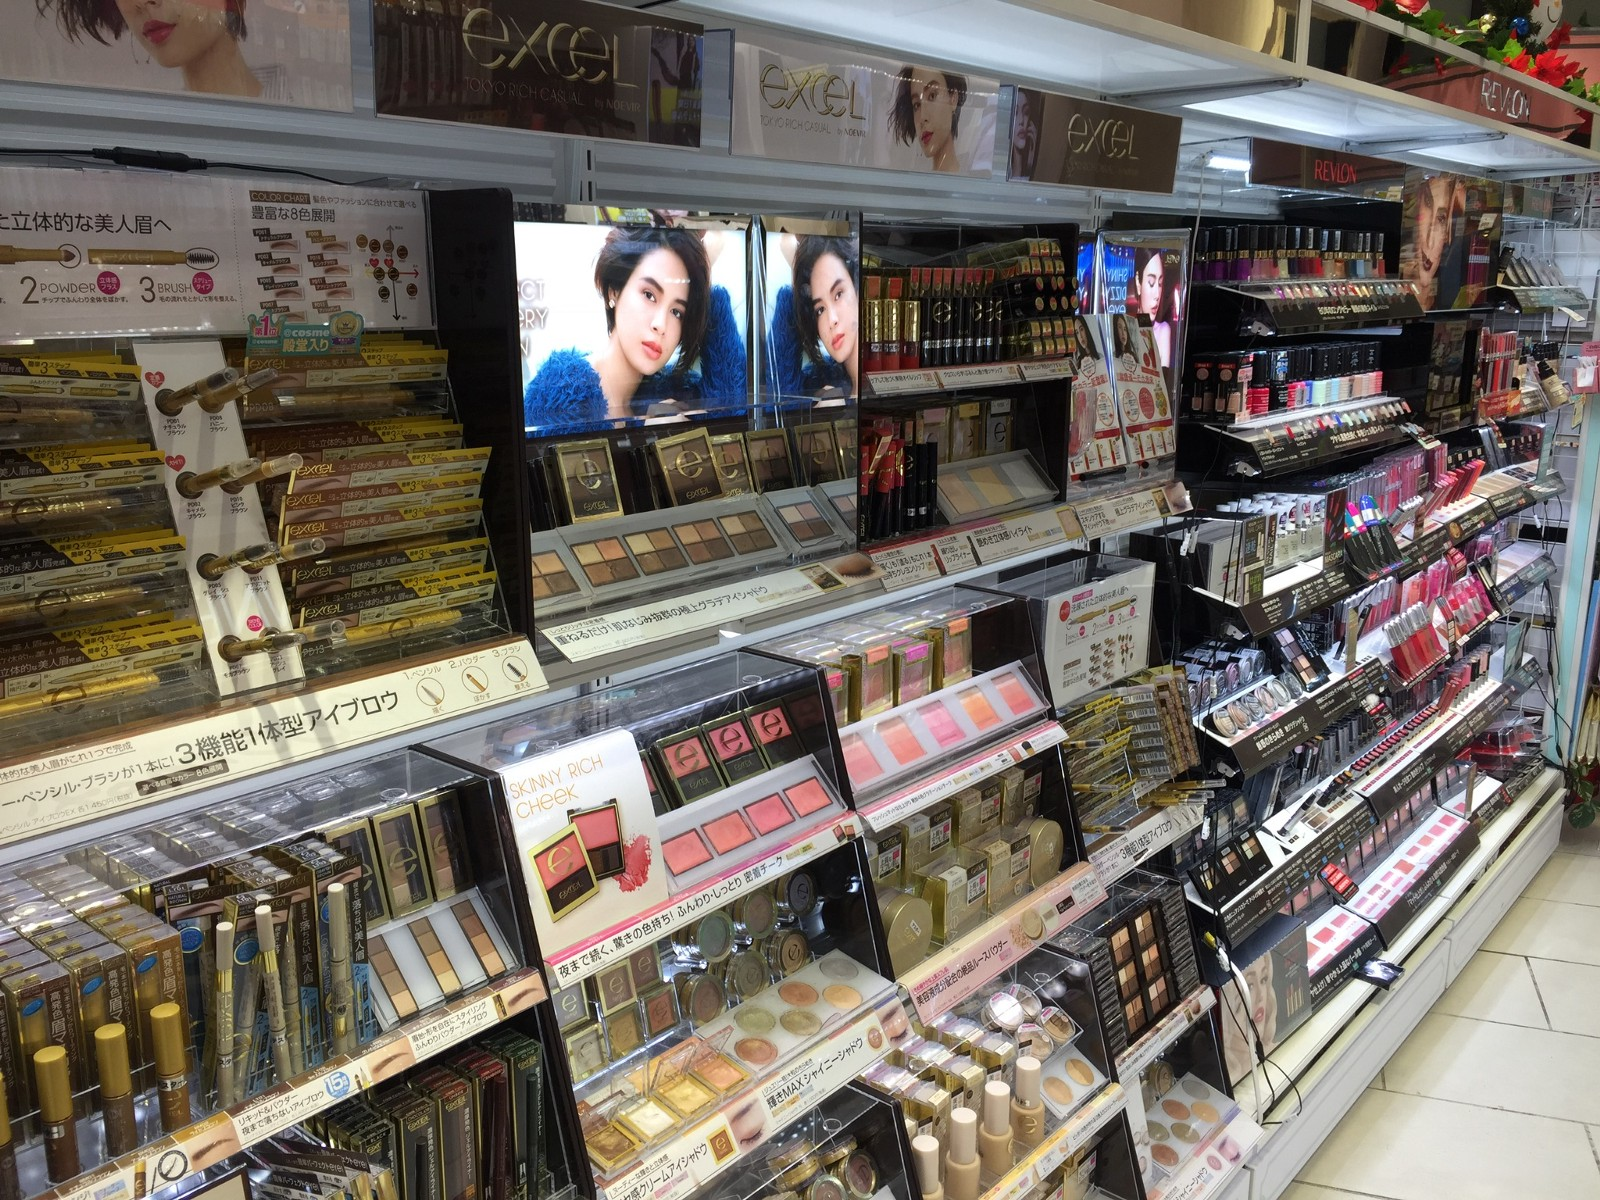 Makeup products sold at KoKuMiN store